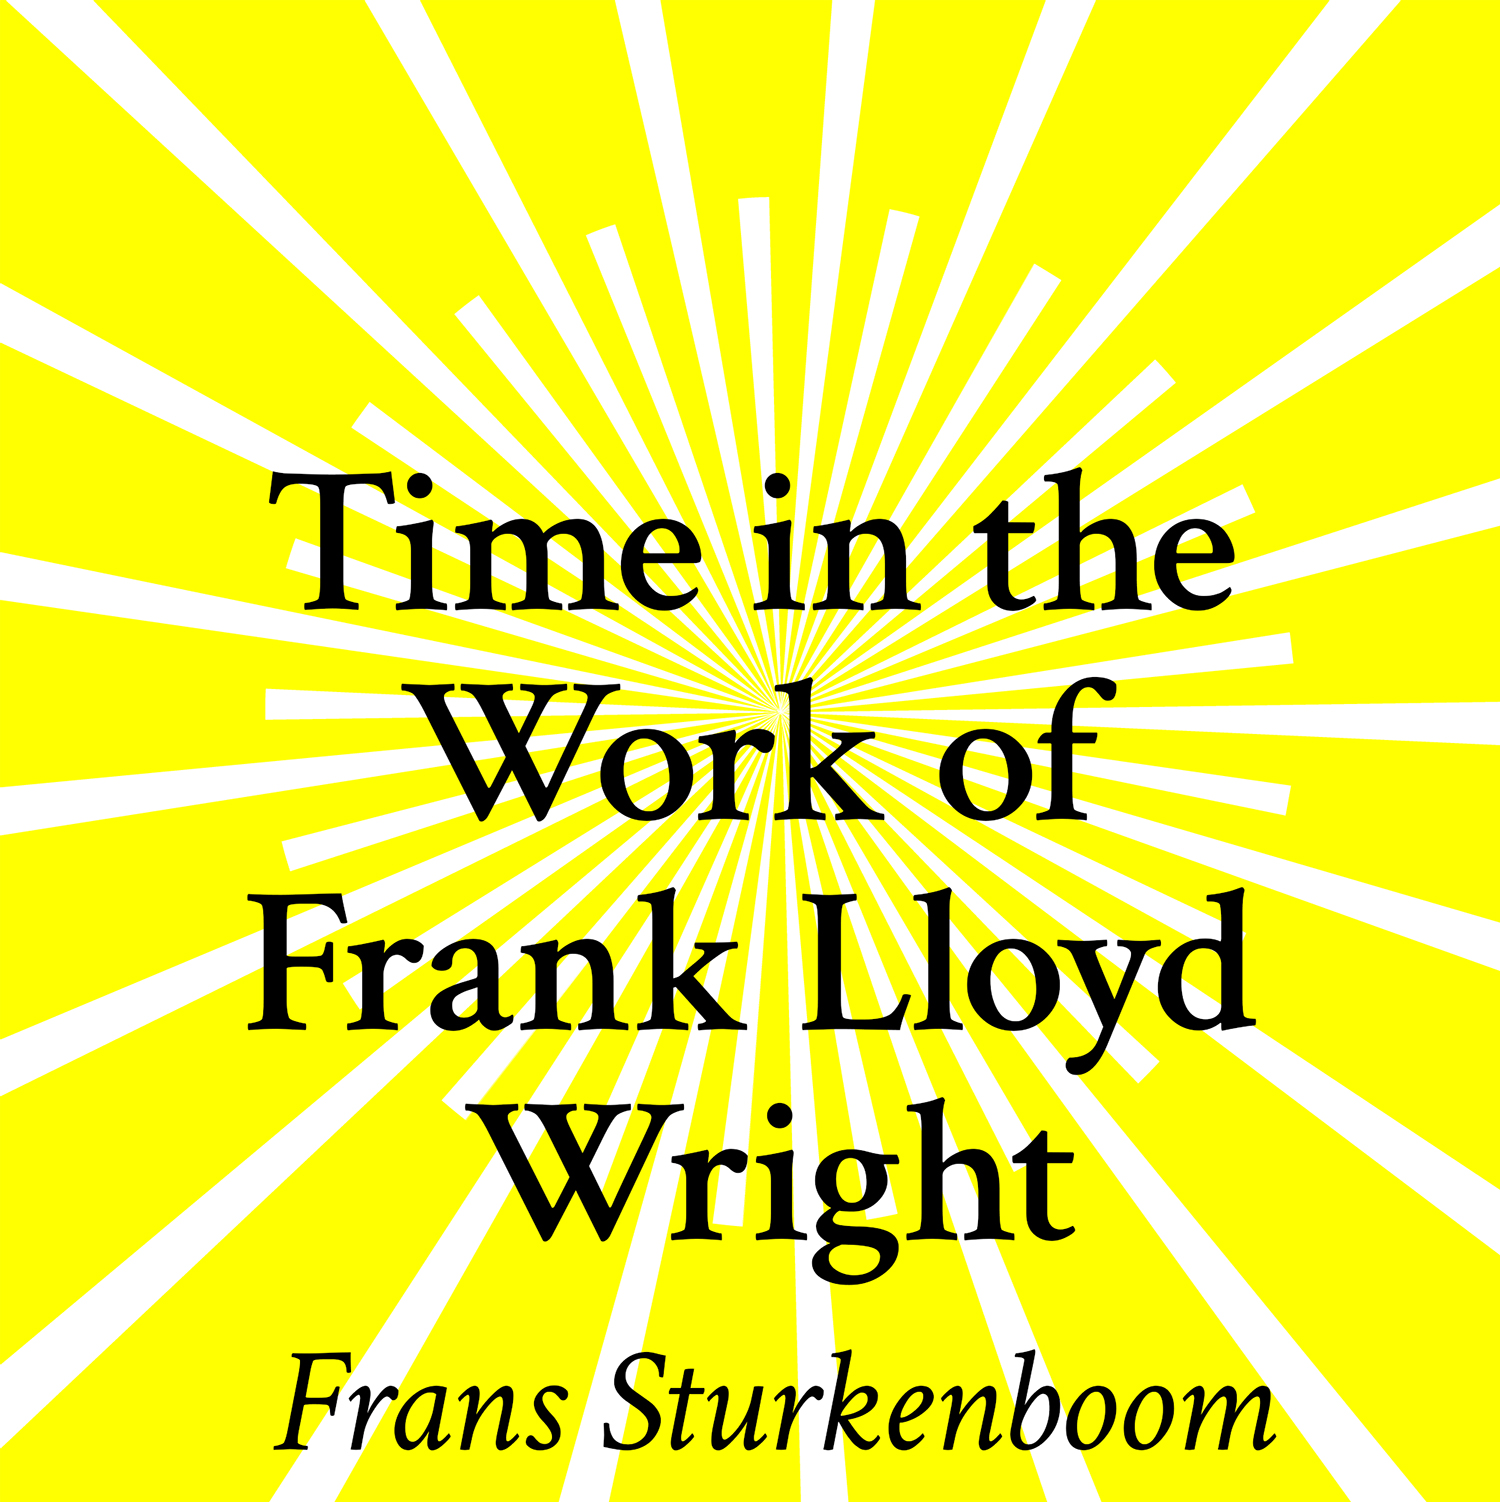 Time in the Work of Frank Lloyd Wright